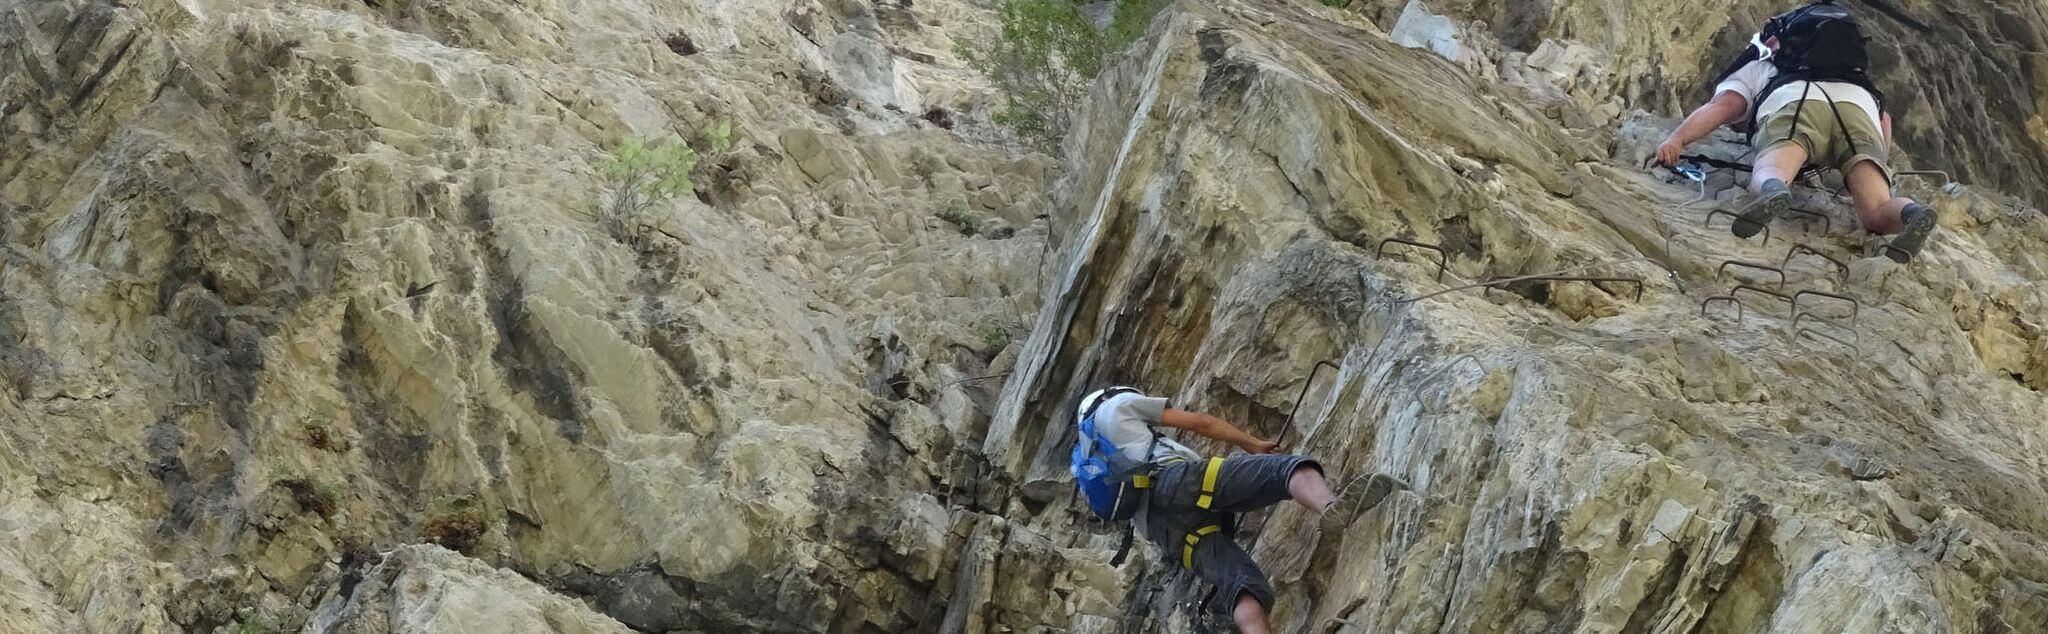 Via Ferrata in Córdoba